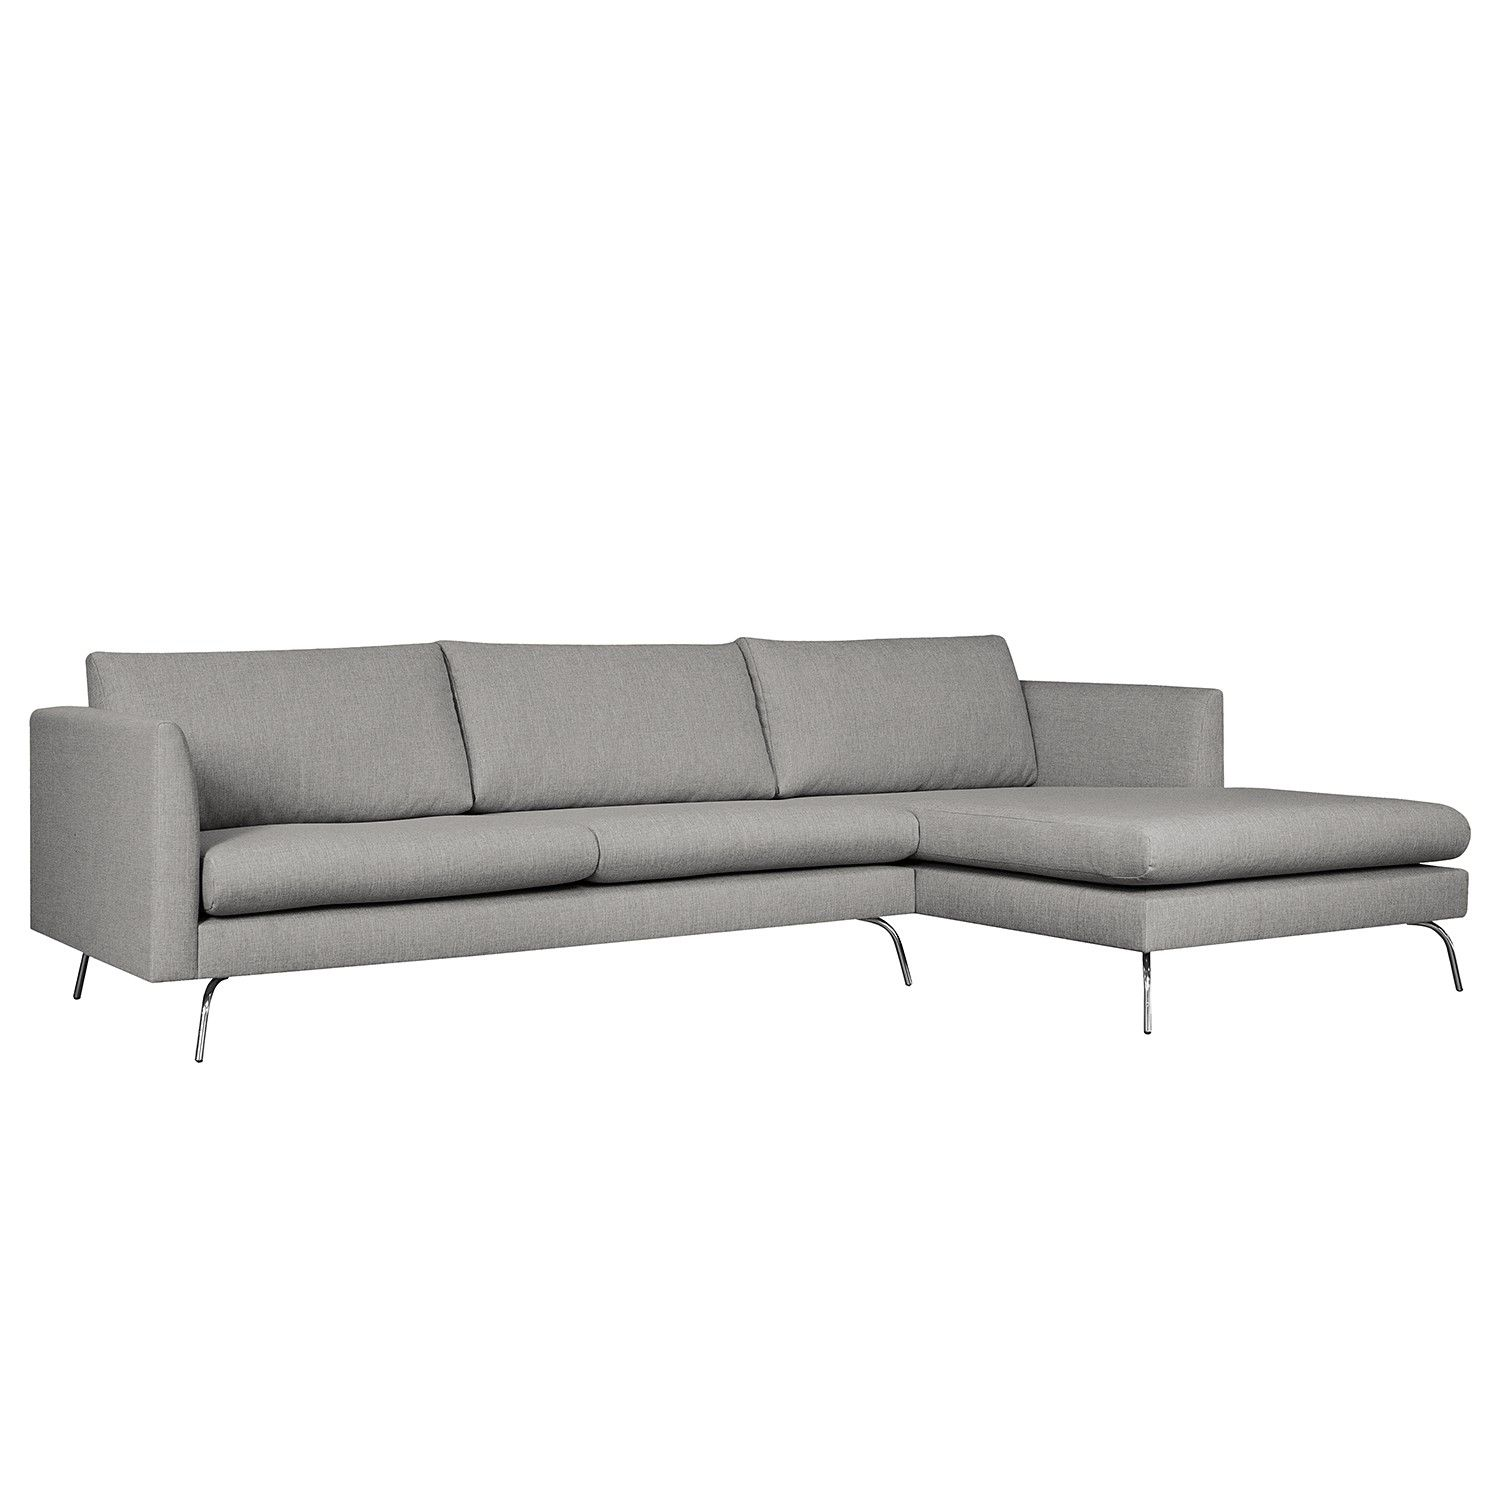 Sofa Online Shopping Philippines Velocity Sofa Big Lots Design Sofa Sets Hyderabad Telangana Sofas Leder Braun Wohnzimmer In 2020 Ecksofa Sofa Leder Braun Sofa